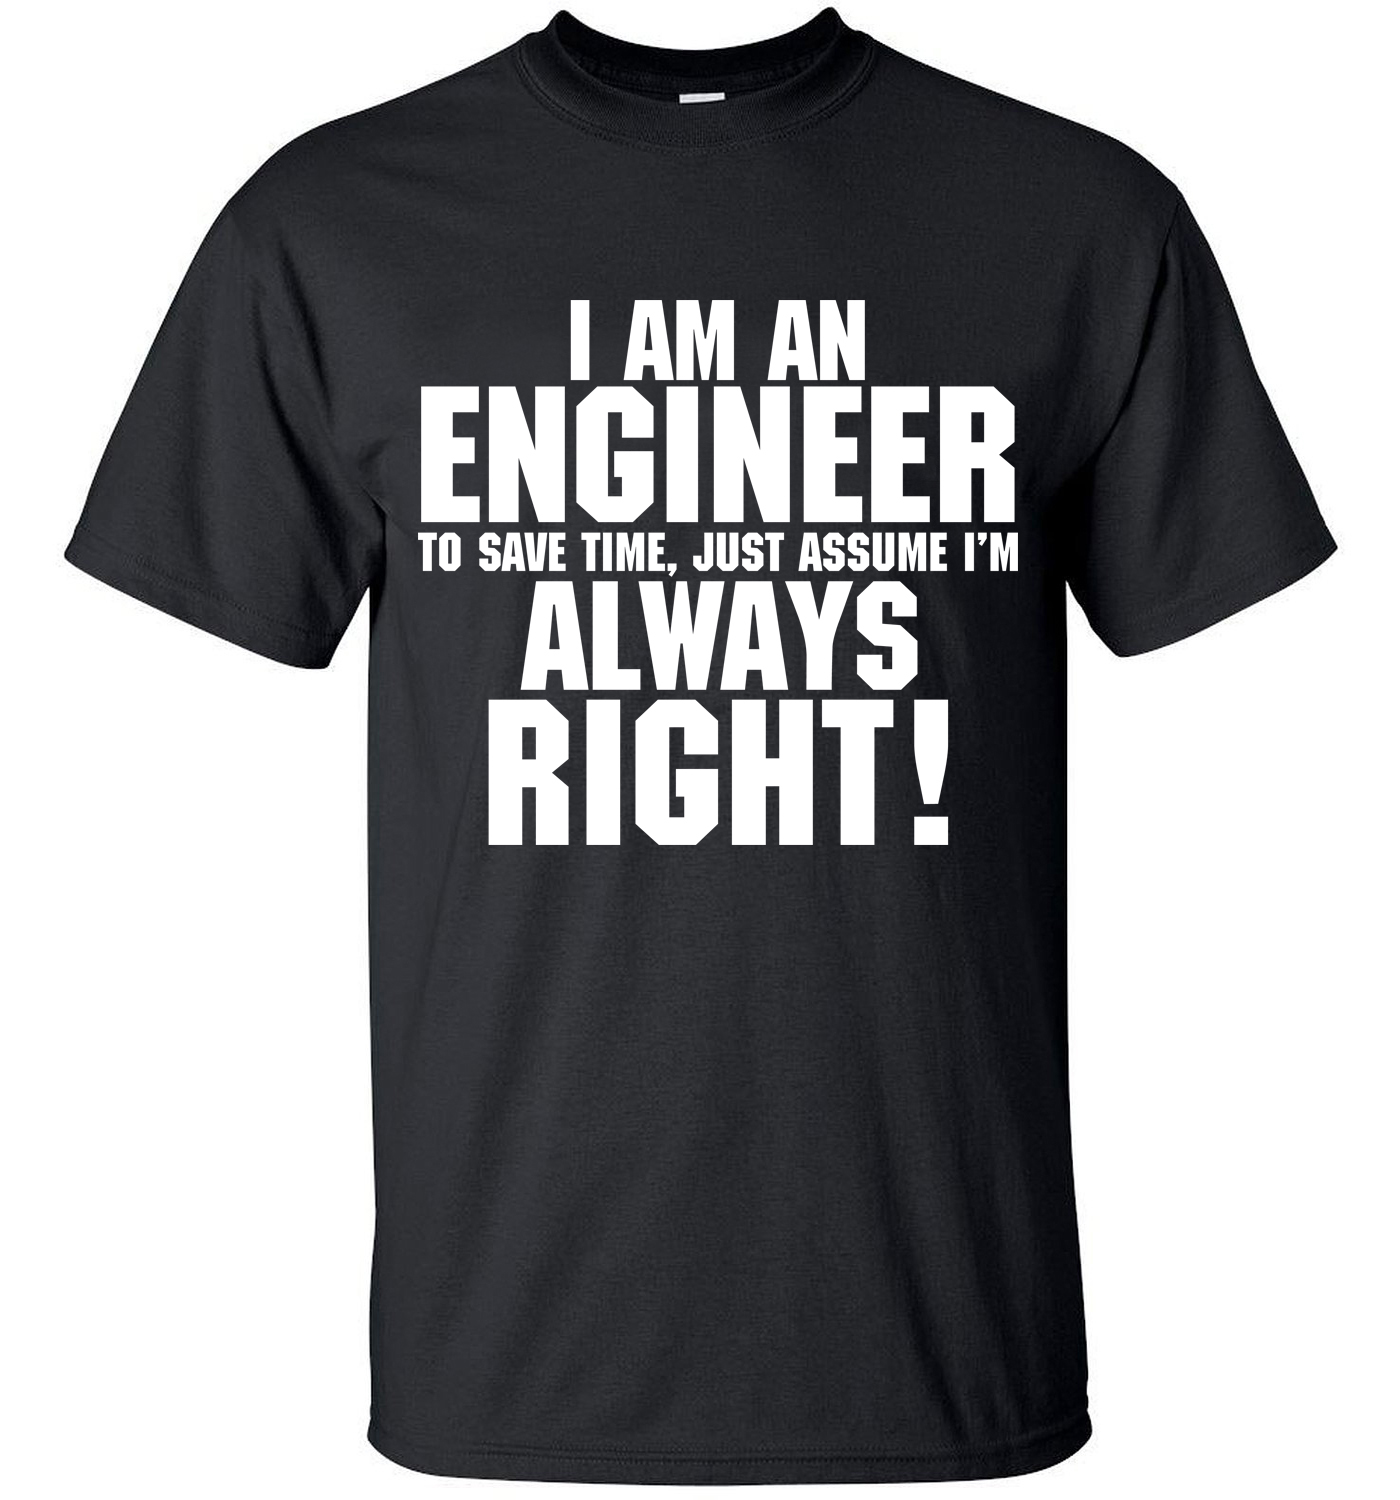 2019 funny TRUST ME I AM AN ENGINEER Fashion streetwear   T  -  Shirt   Mens   t     shirts   tops tees top brand slim clothing pp crossfit